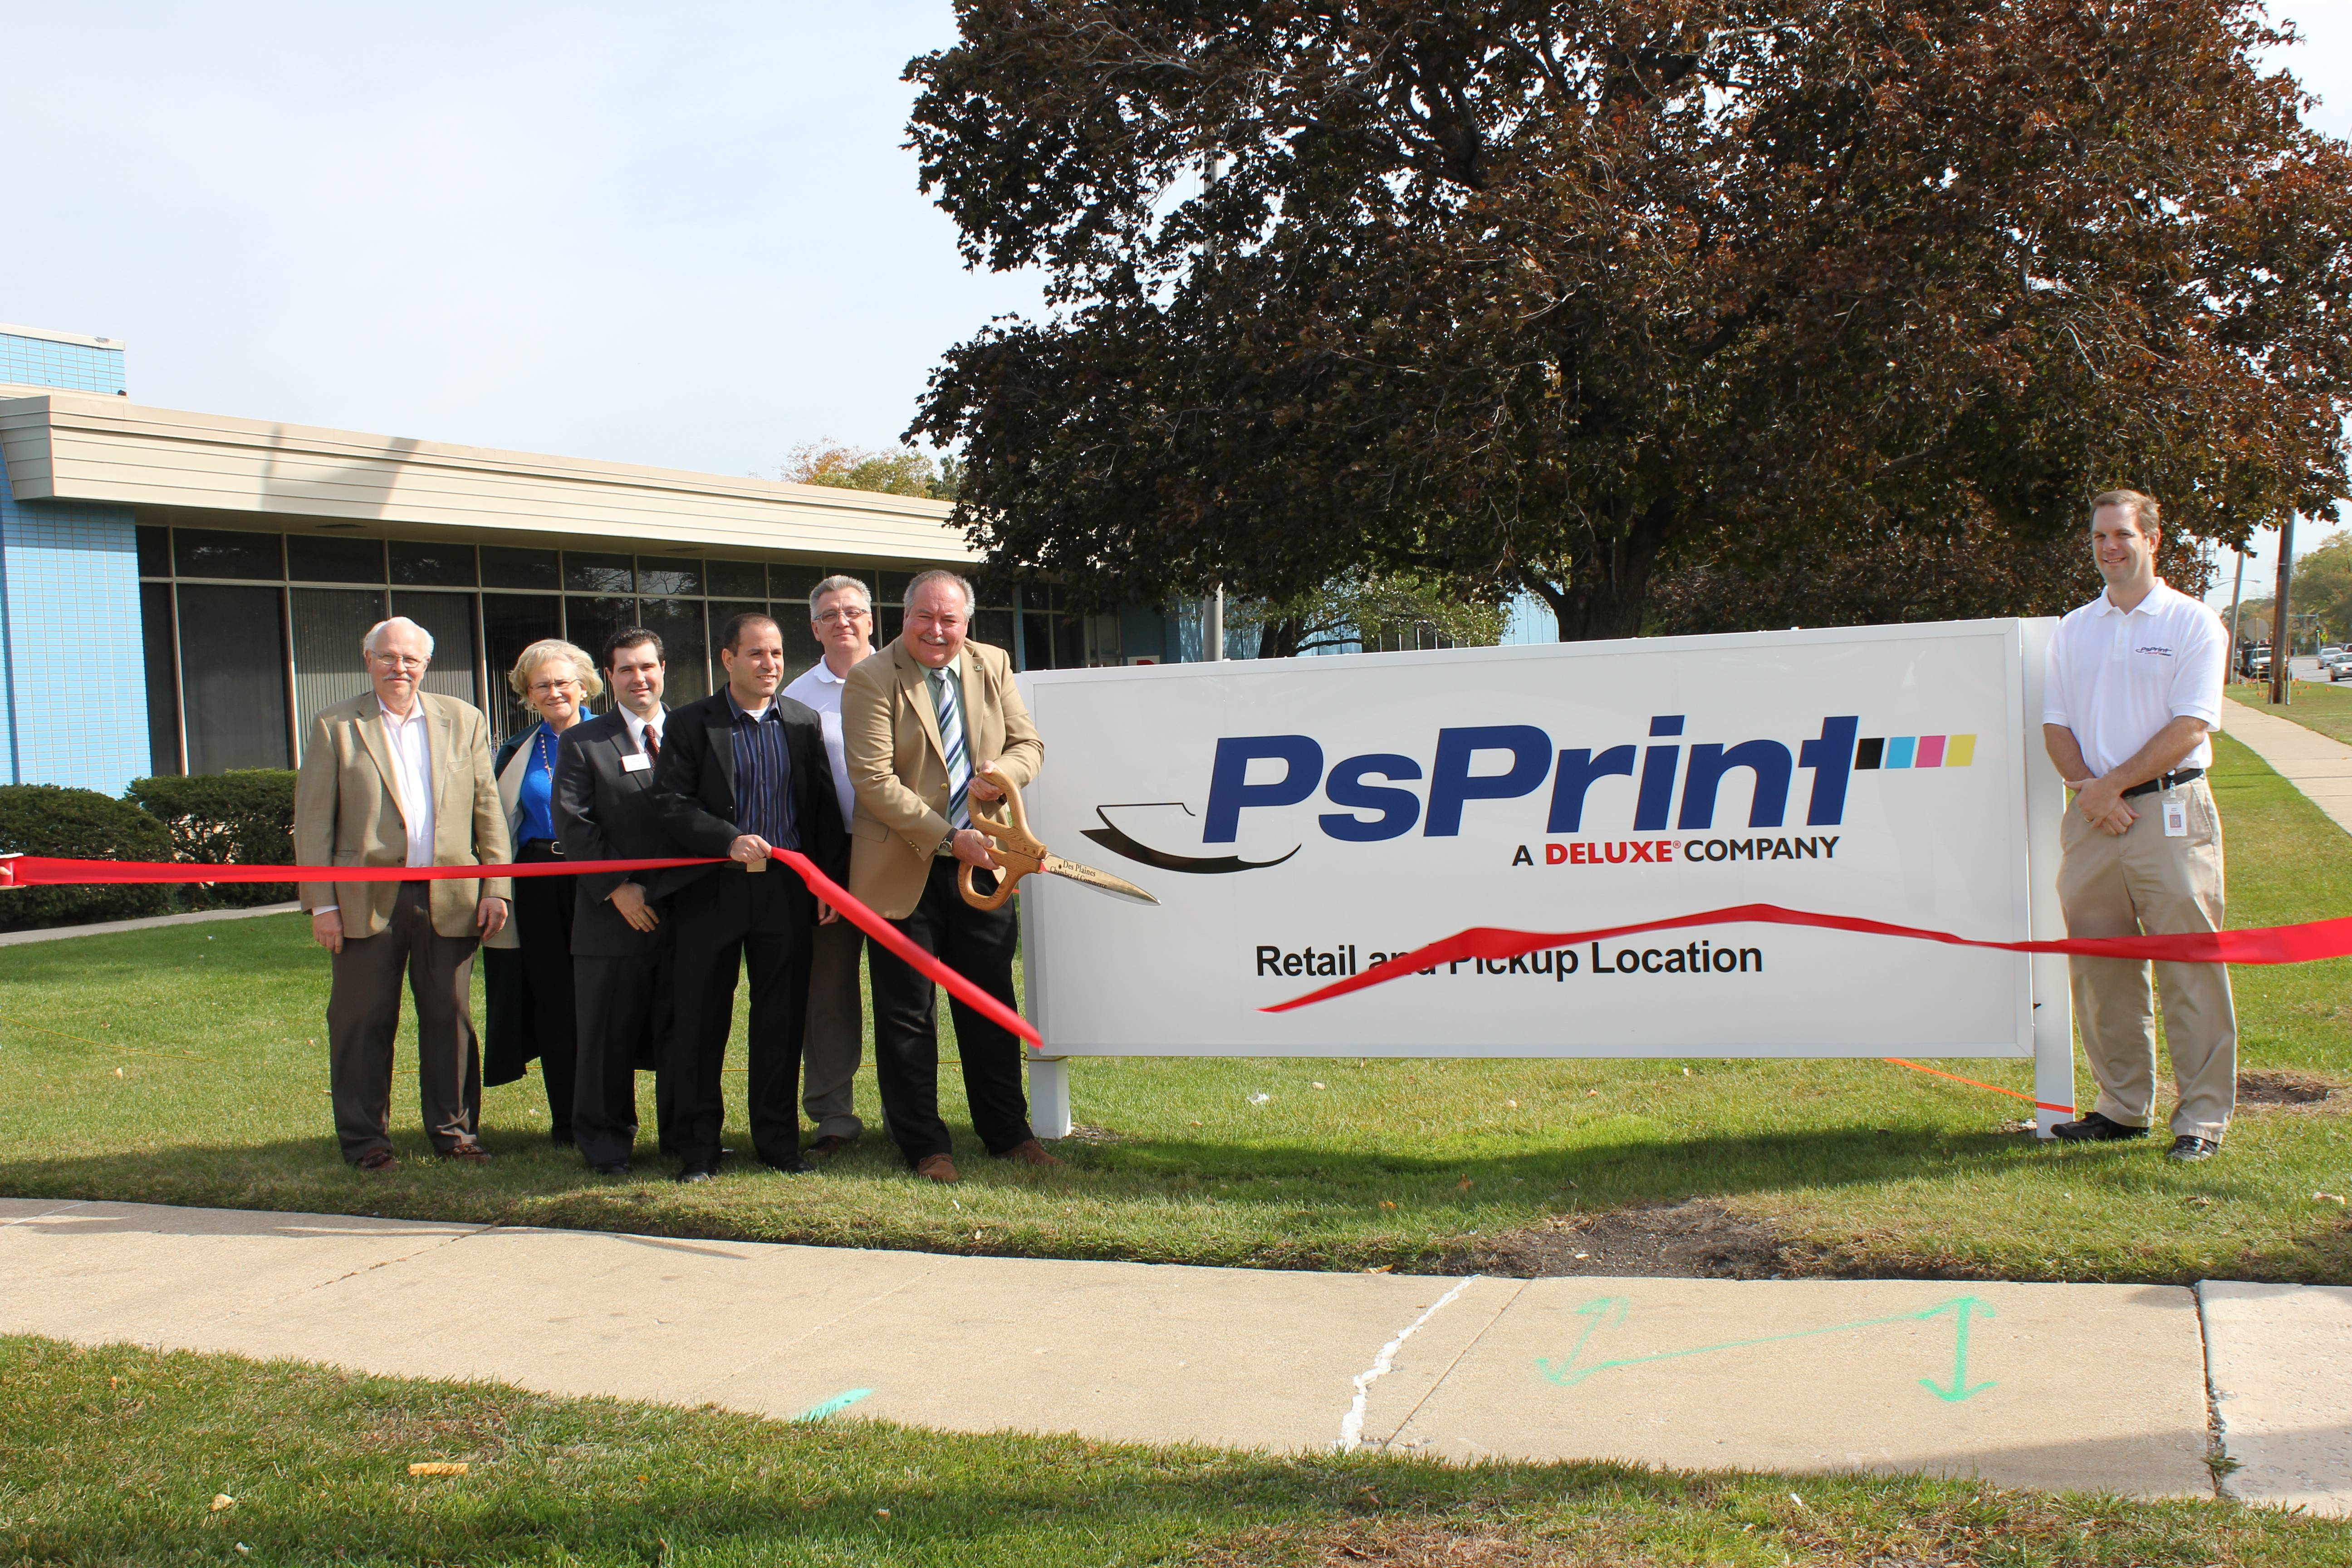 (pictured above left to right) John Koelig, Koelig & Associates, Donna Catlett, Mayor's Office, Marty Gardner, Village Bank & Trust, Illan Sasson, Vice President Operations, Deluxe Corp., Randy Kmieciak, PsPrint, 6th Ward Alderman Mark Walsten, and Rich Appenzeller, PsPrint, pose for a photograph in front of PsPrint, 1600 E. Touhy Avenue, as the ribbon is cut marking the grand opening.